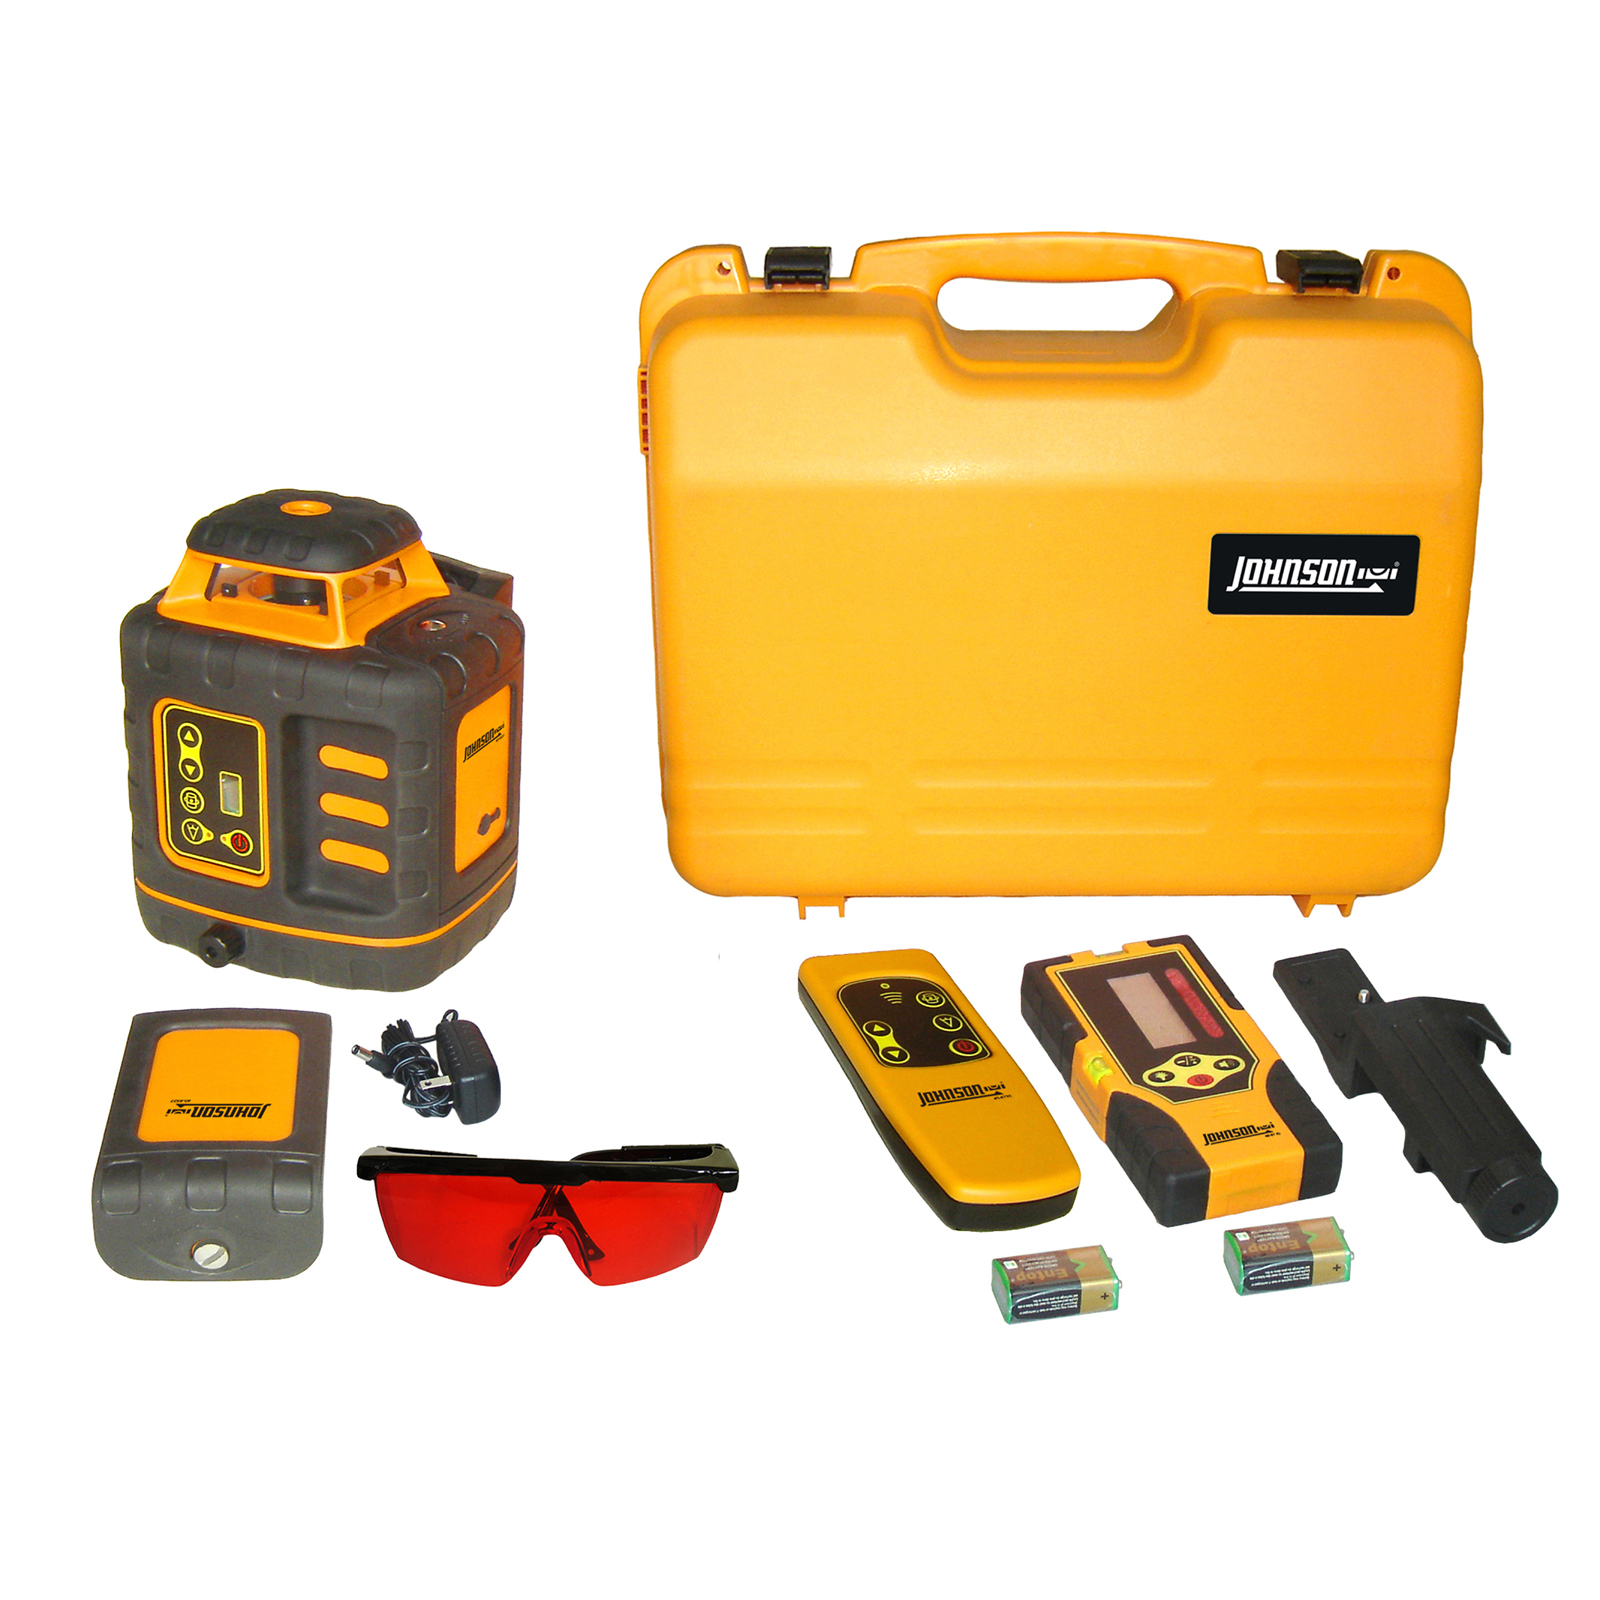 Johnson Level Self-Leveling Rotary Laser Kit